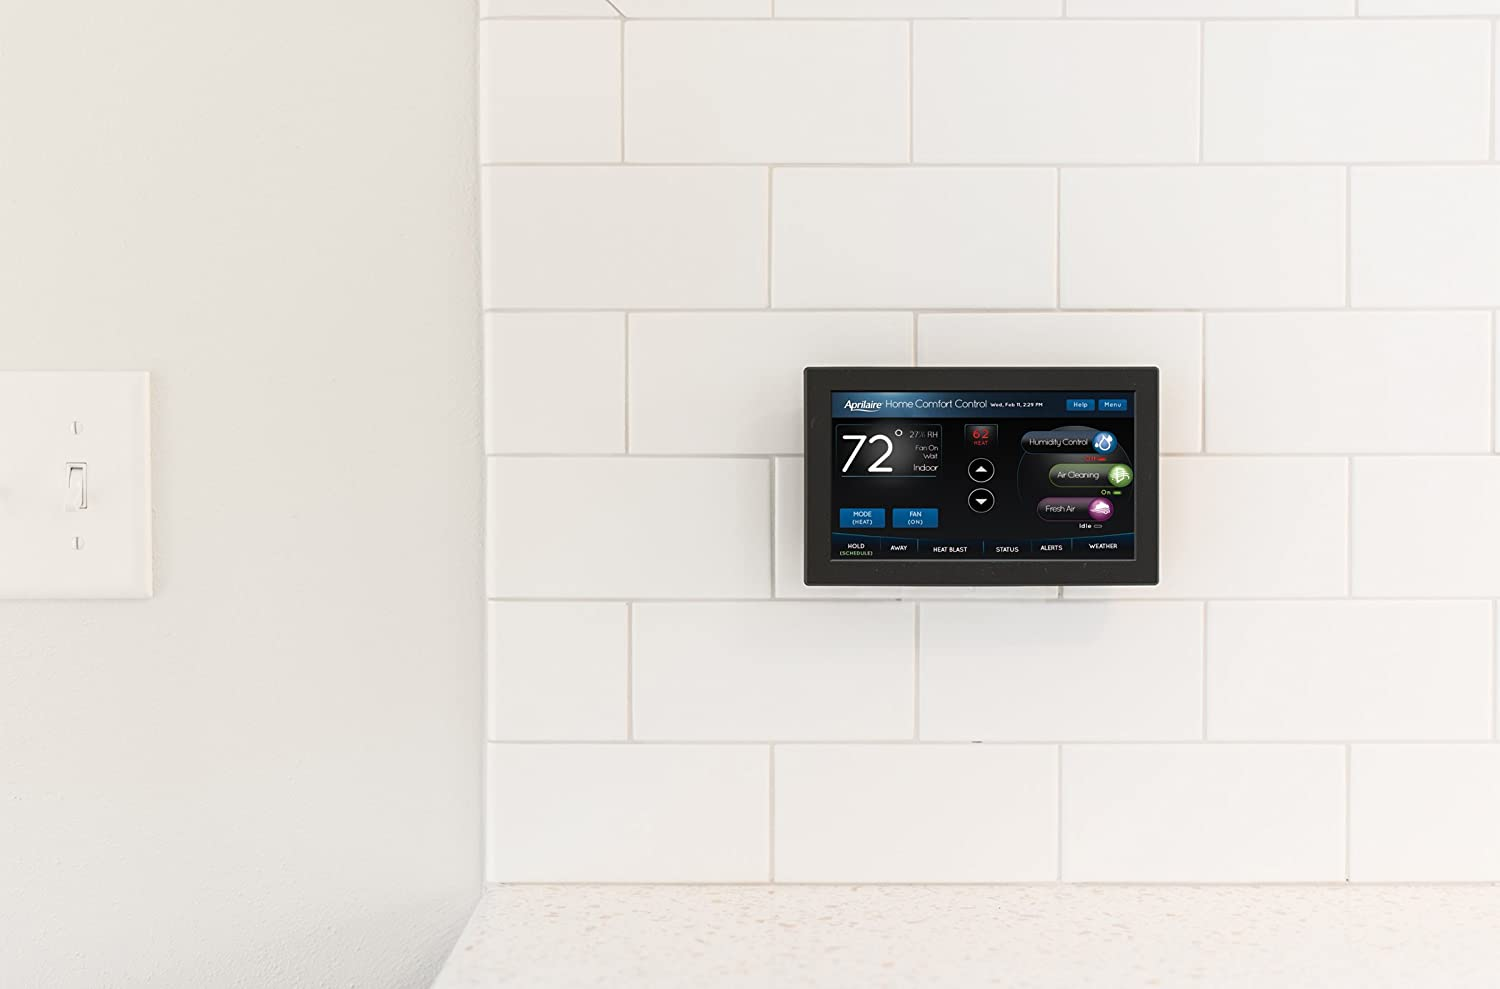 Aprilaire 8920w Color Touch Screen Wi Fi Iaq Thermostat Works With Ecobee 600 Wiring Diagram Alexa Home Improvement